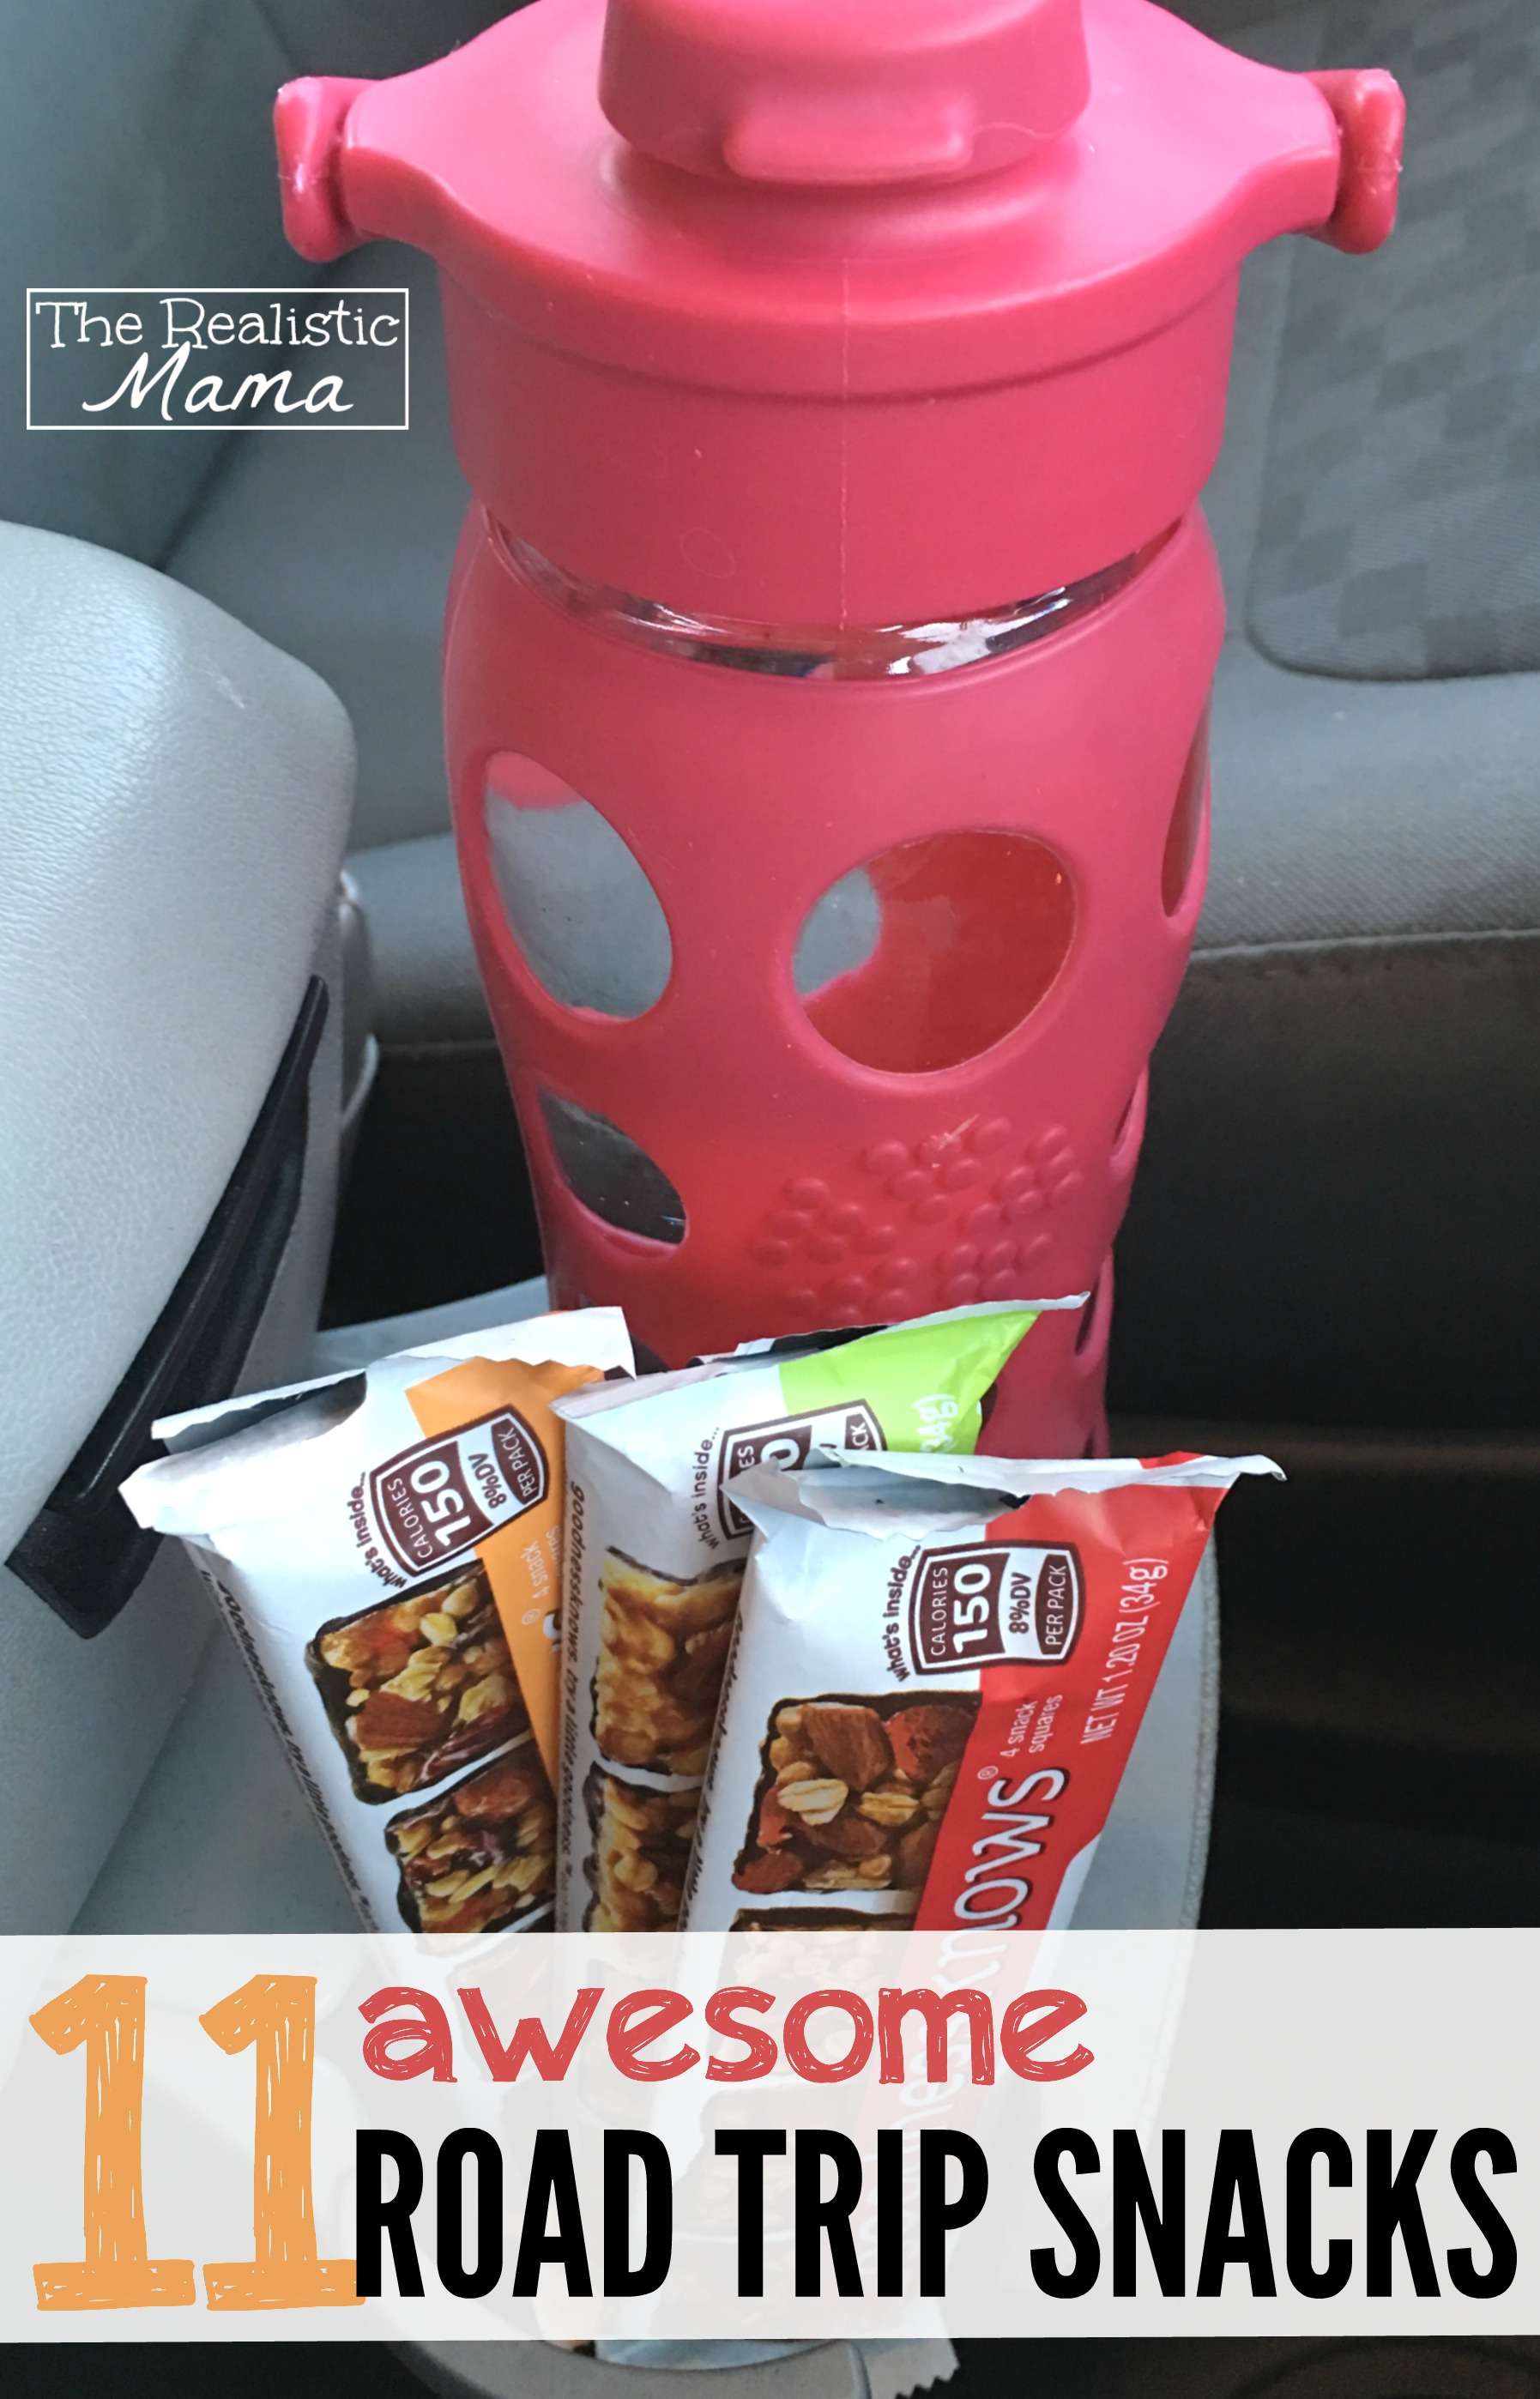 11 Awesome Road Trip Snacks and a Brilliant Kid Friendly Snack!